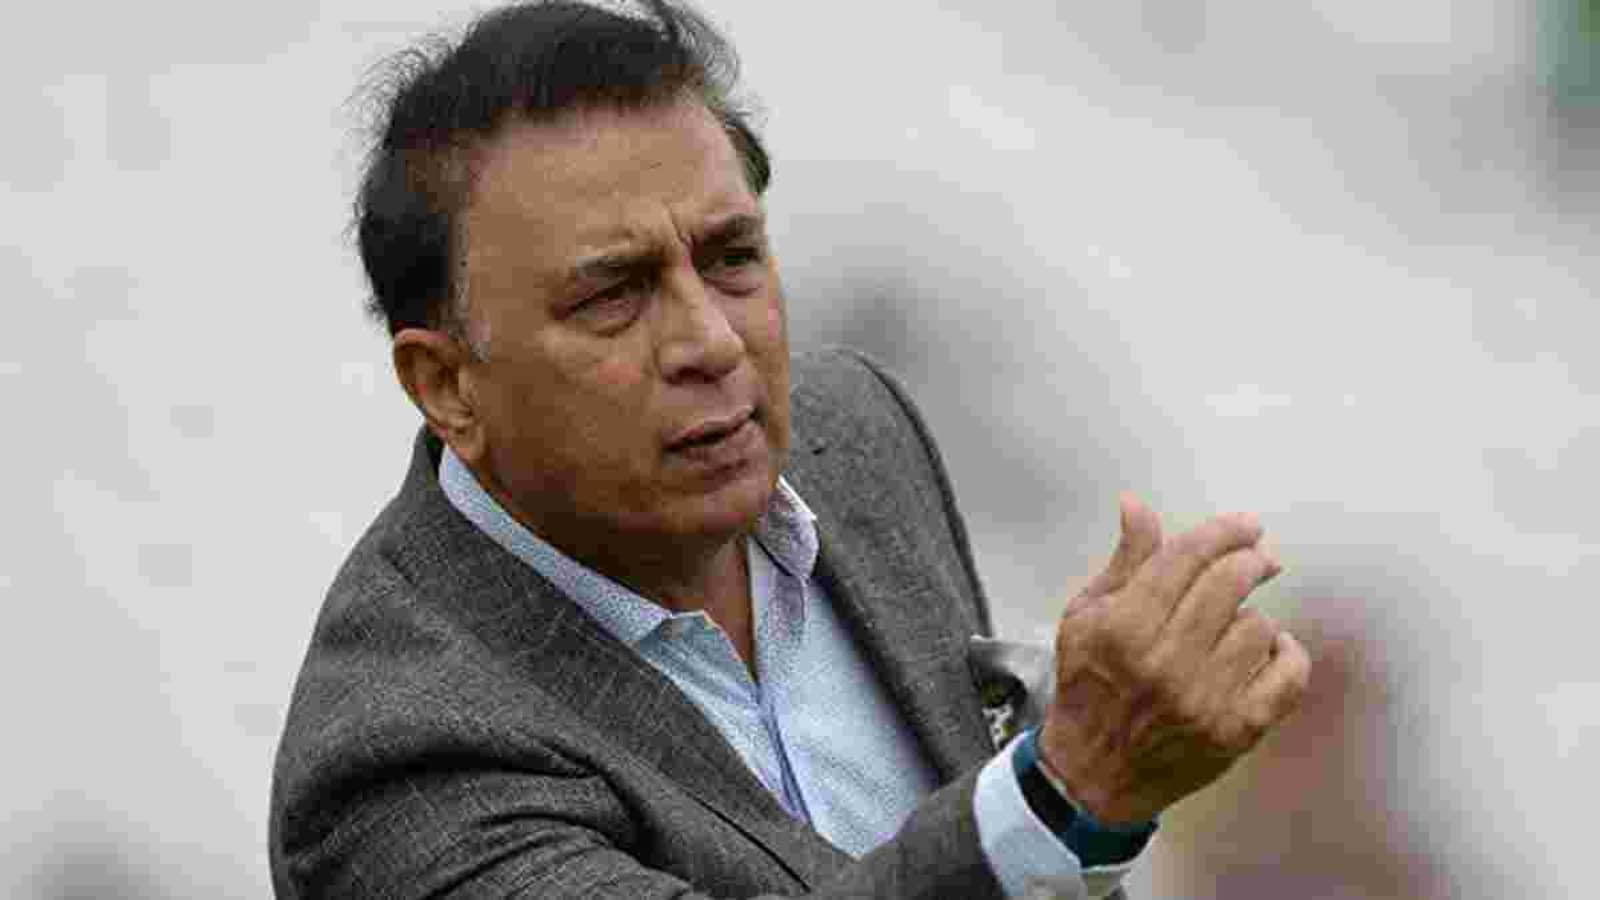 Sunil Gavaskar comments on R Ashwin's chances of making it to India's limited-overs squad - Hindustan Times